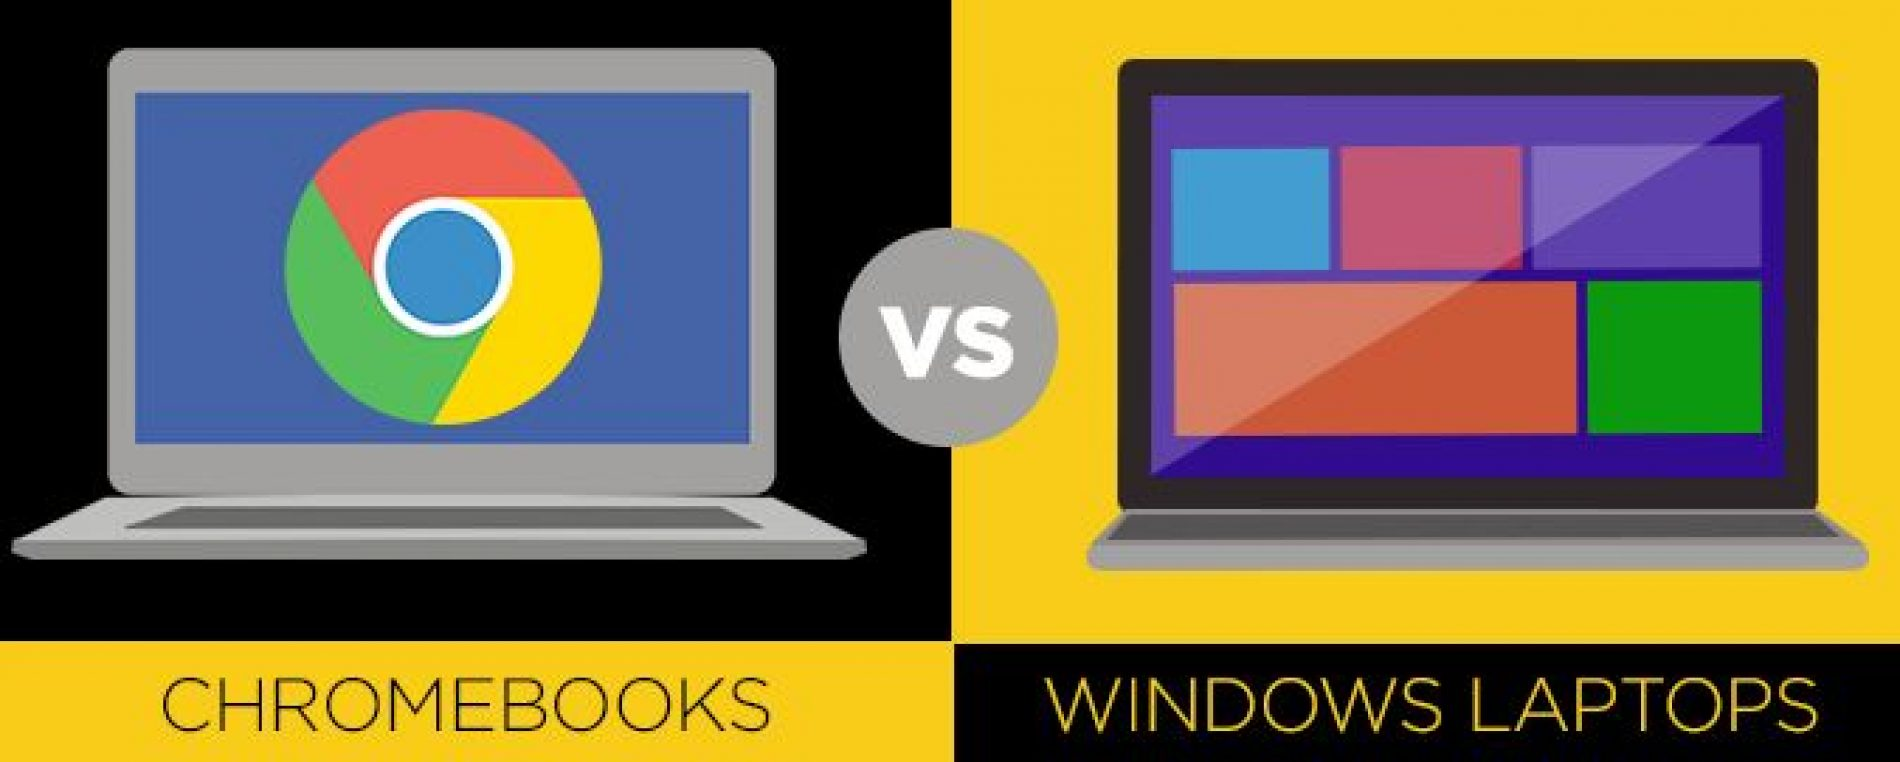 Chromebooks vs. Windows 10 Laptops: What Should You Buy?